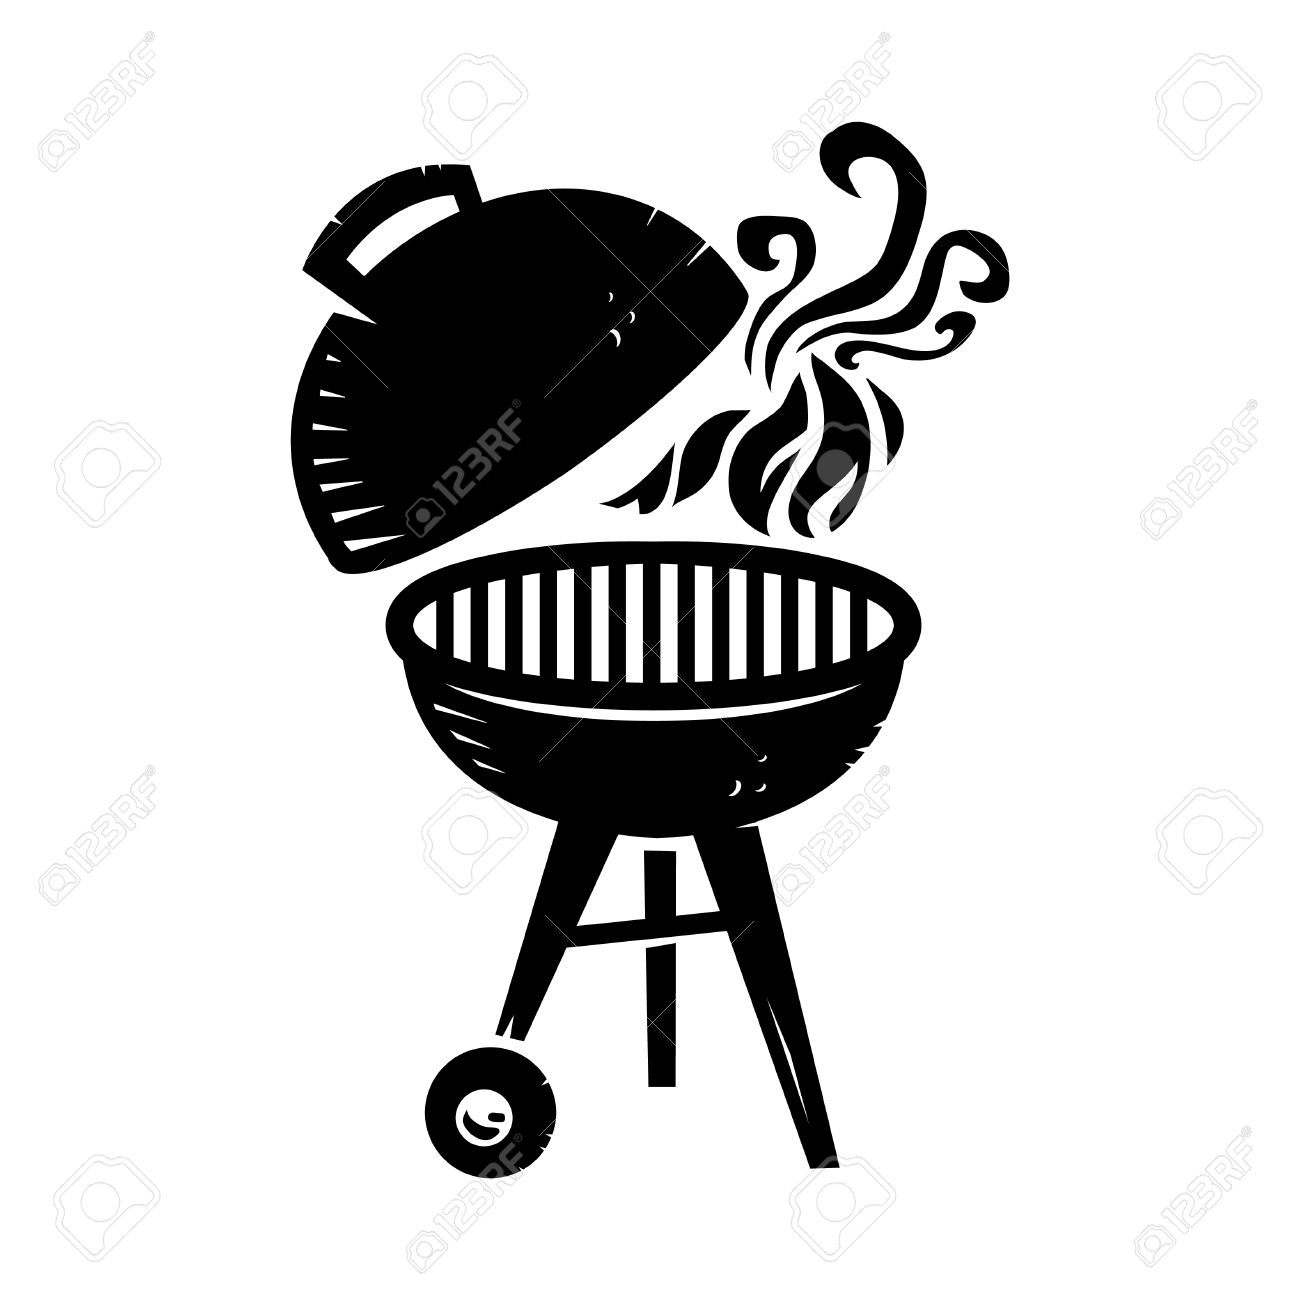 9 089 grill vector stock vector illustration and royalty free grill rh 123rf com clip art grilled cheese clip art grilled hamburger